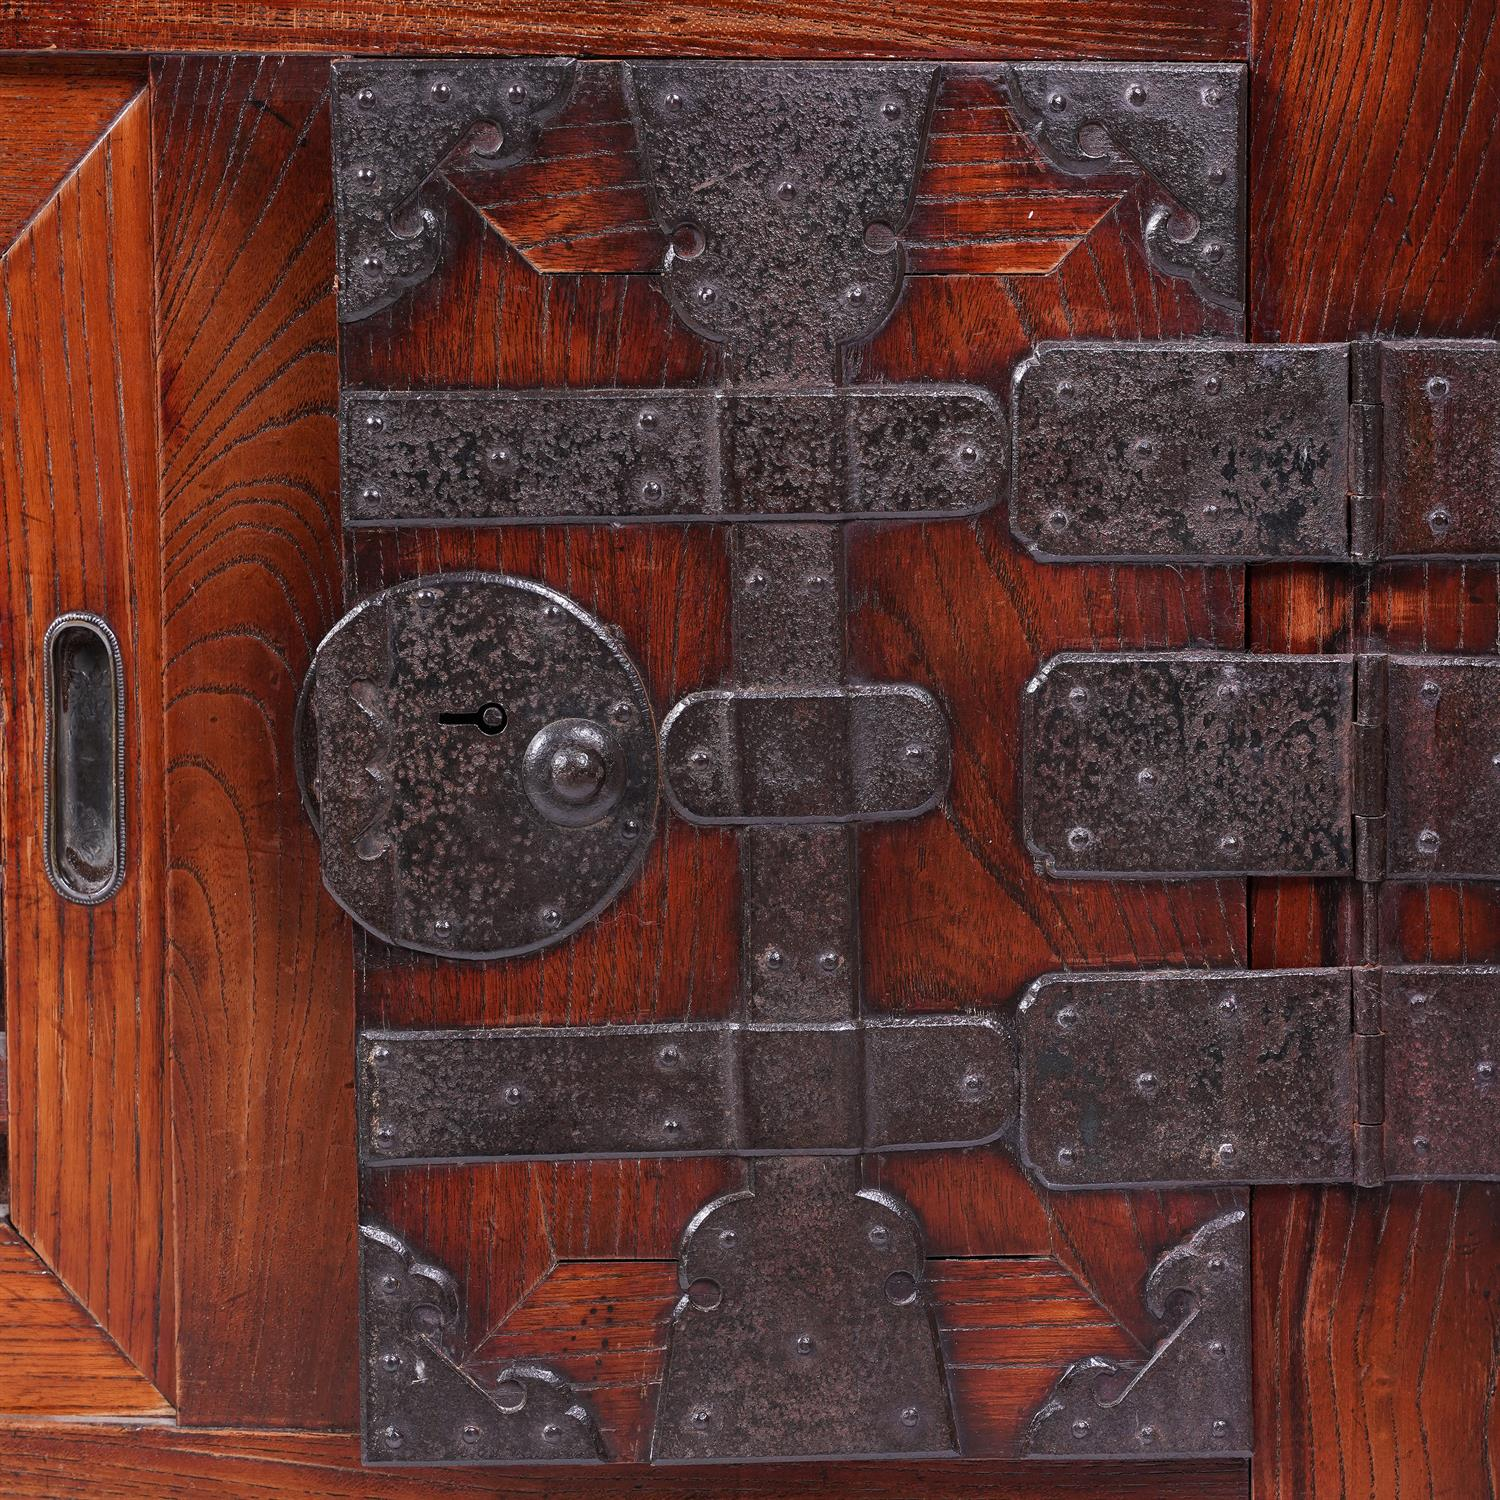 .A KEYAKI AND HINOKI WOOD DOCUMENT CHEST, CHOBA DANSU Japan, Meiji period The front part opening - Image 3 of 3